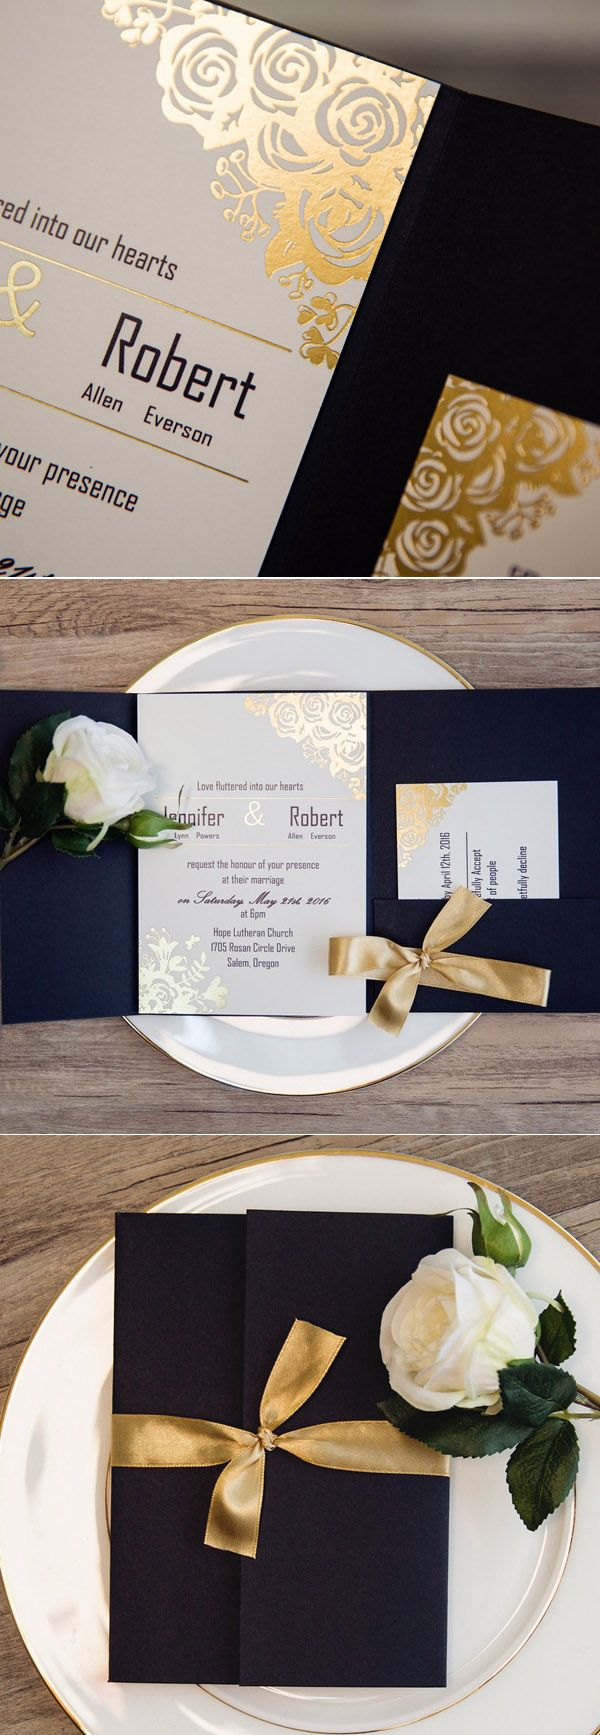 Top 10 Wedding Invitation Trends For 2017 | Pinterest | Magazines ...